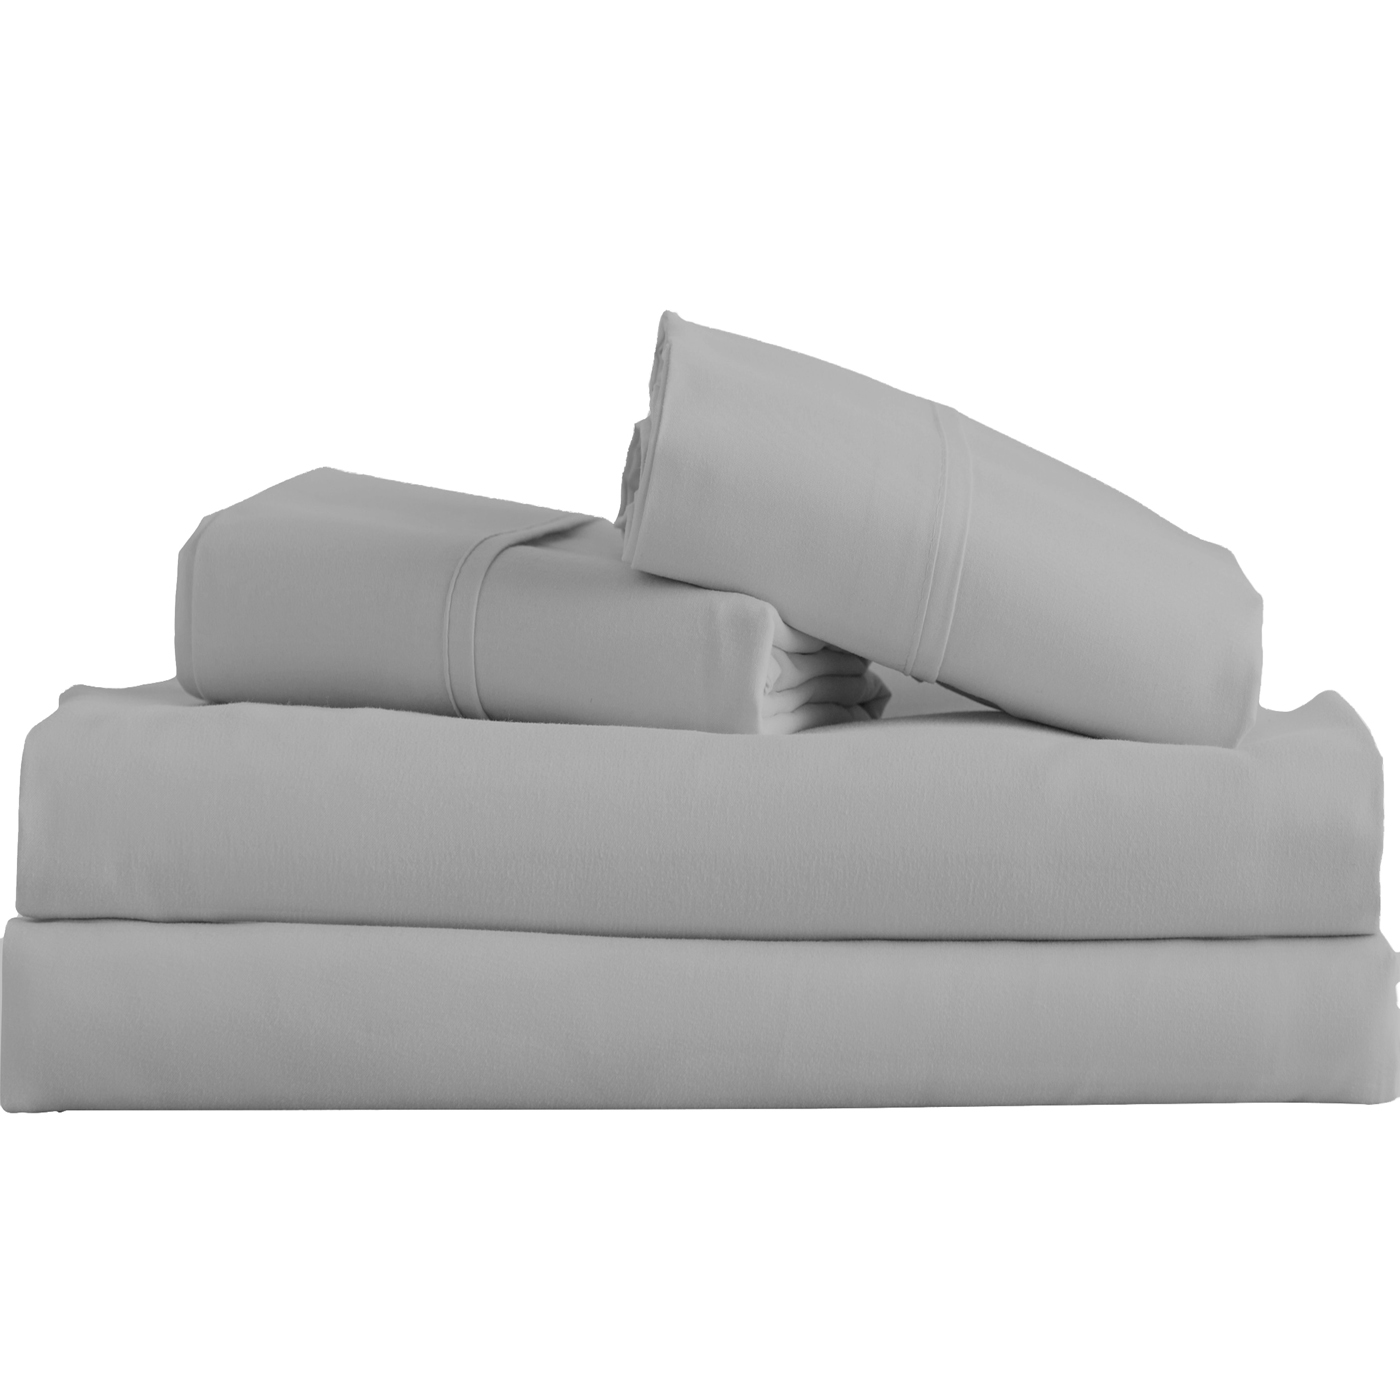 Supreme-Super-Soft-4-Piece-Bed-Sheet-Set-Deep-Pocket-Bedding-All-Colors-Sizes thumbnail 14